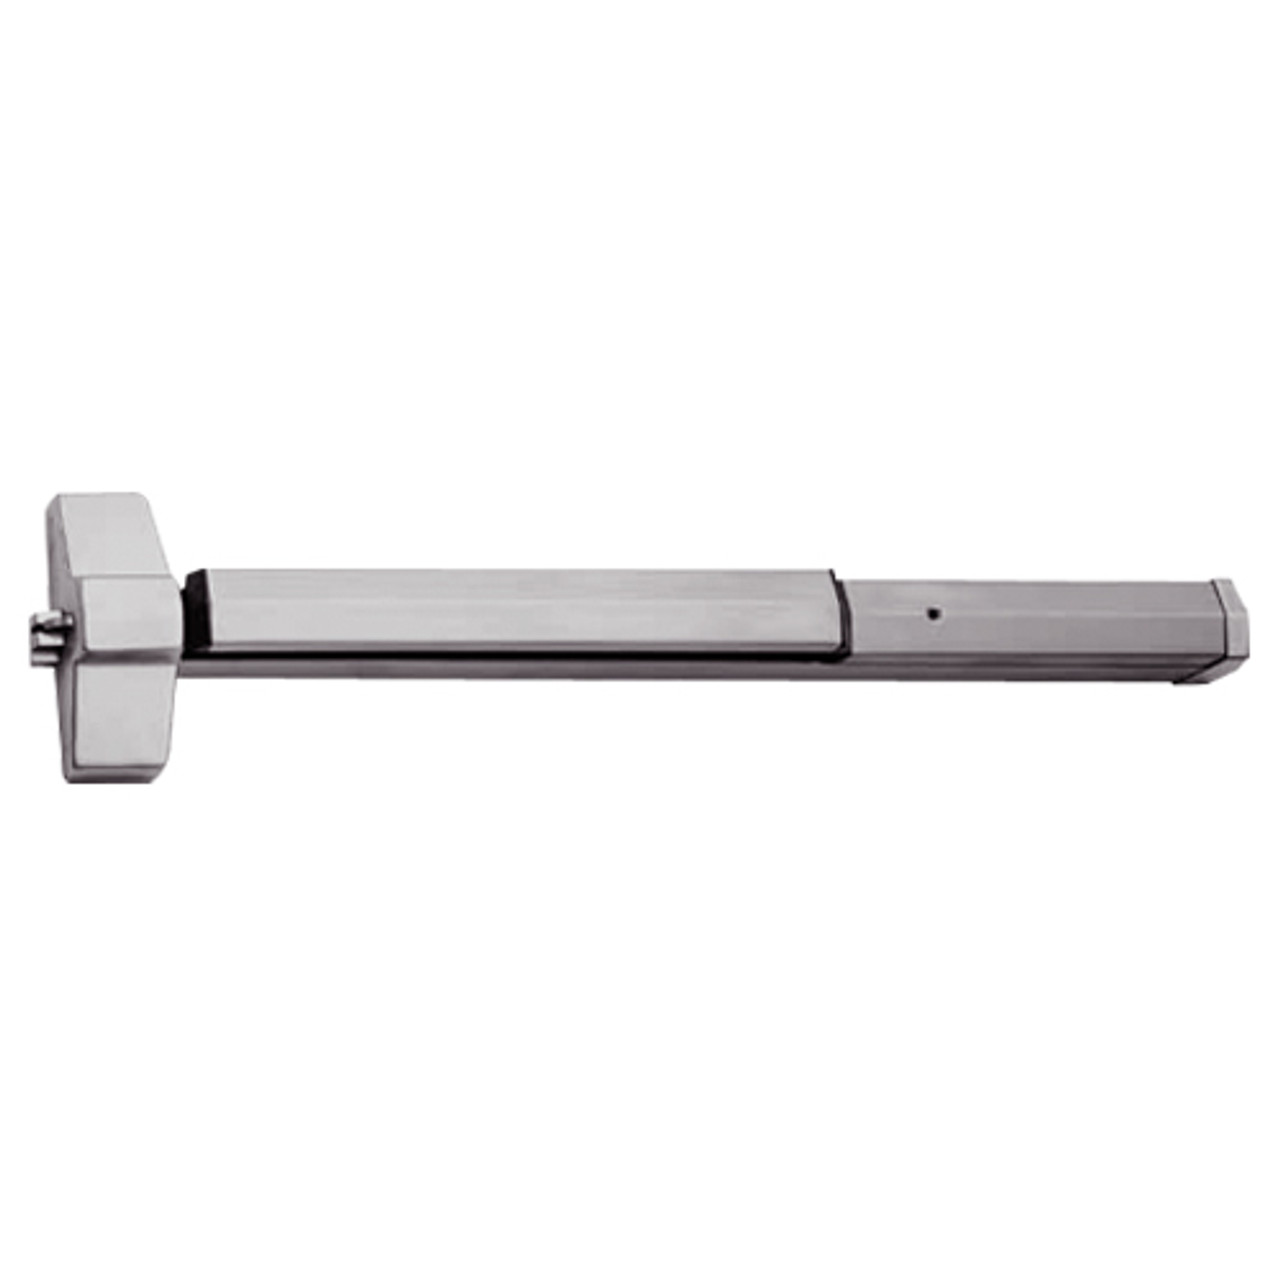 7150-24-630 Yale 7000 Series Non Fire Rated SquareBolt Exit Device in Satin Stainless Steel